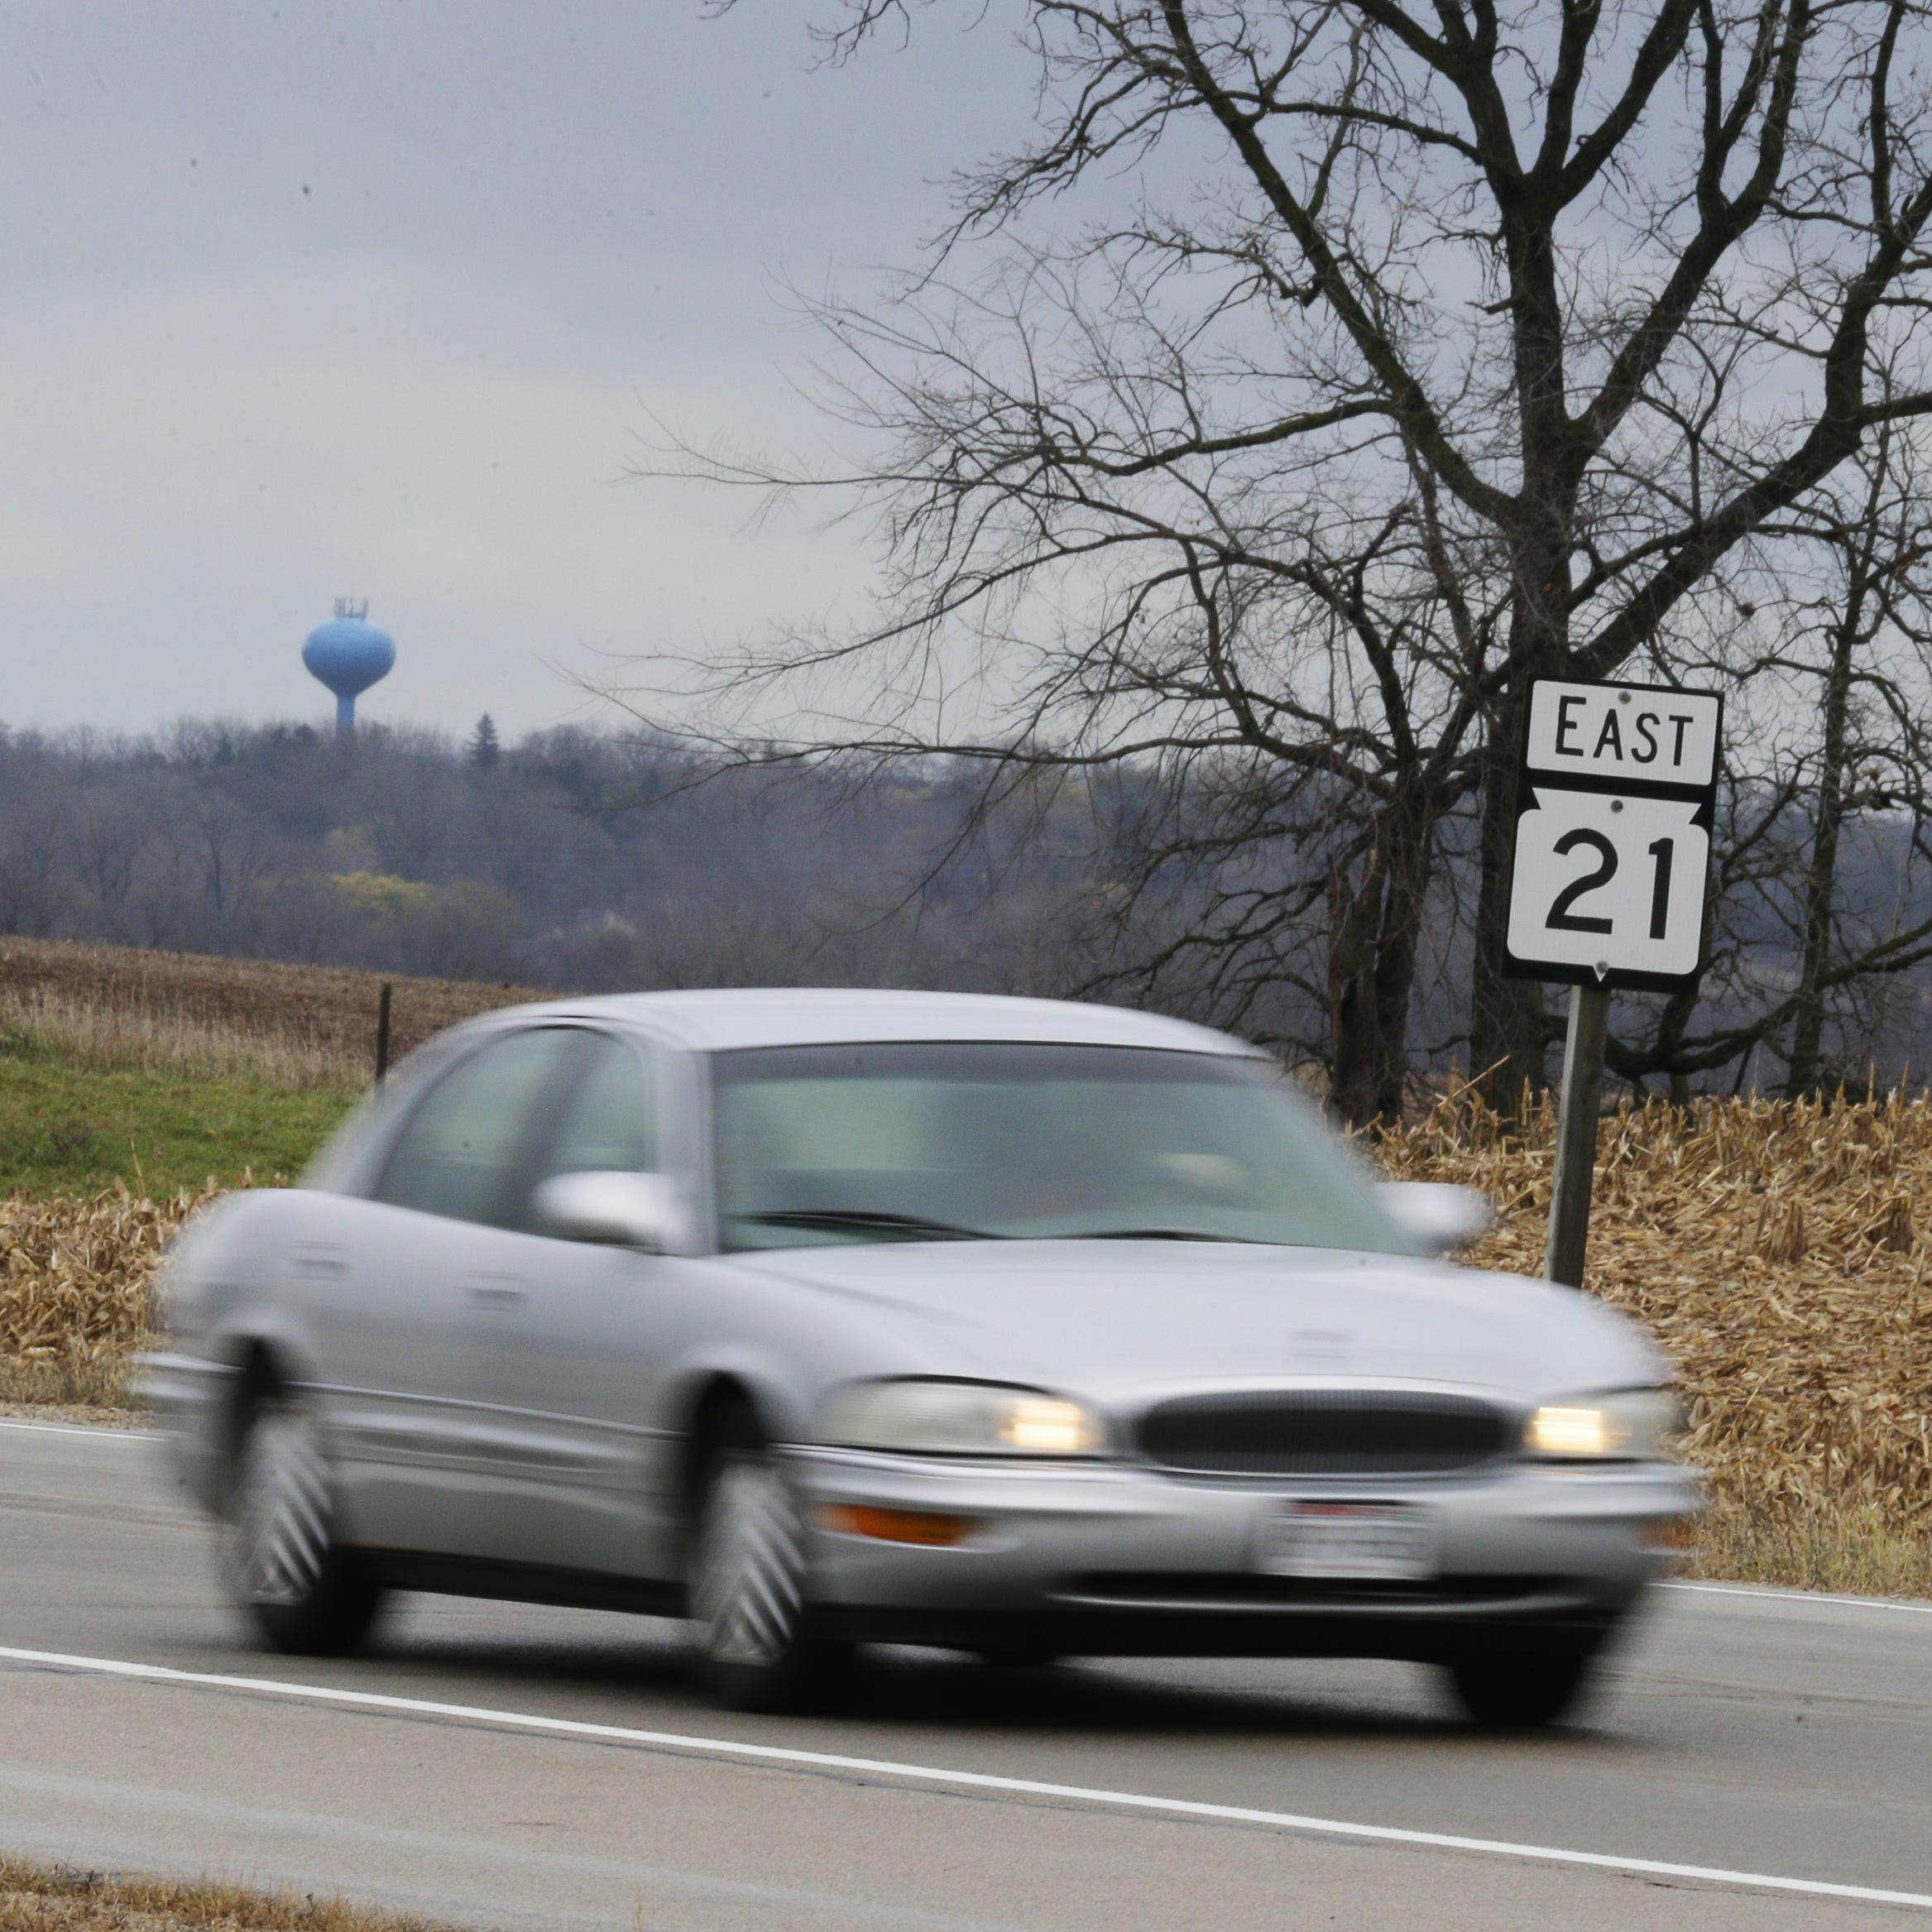 After two deadly crashes on State 21, we ask experts: is the two-lane highway safe?